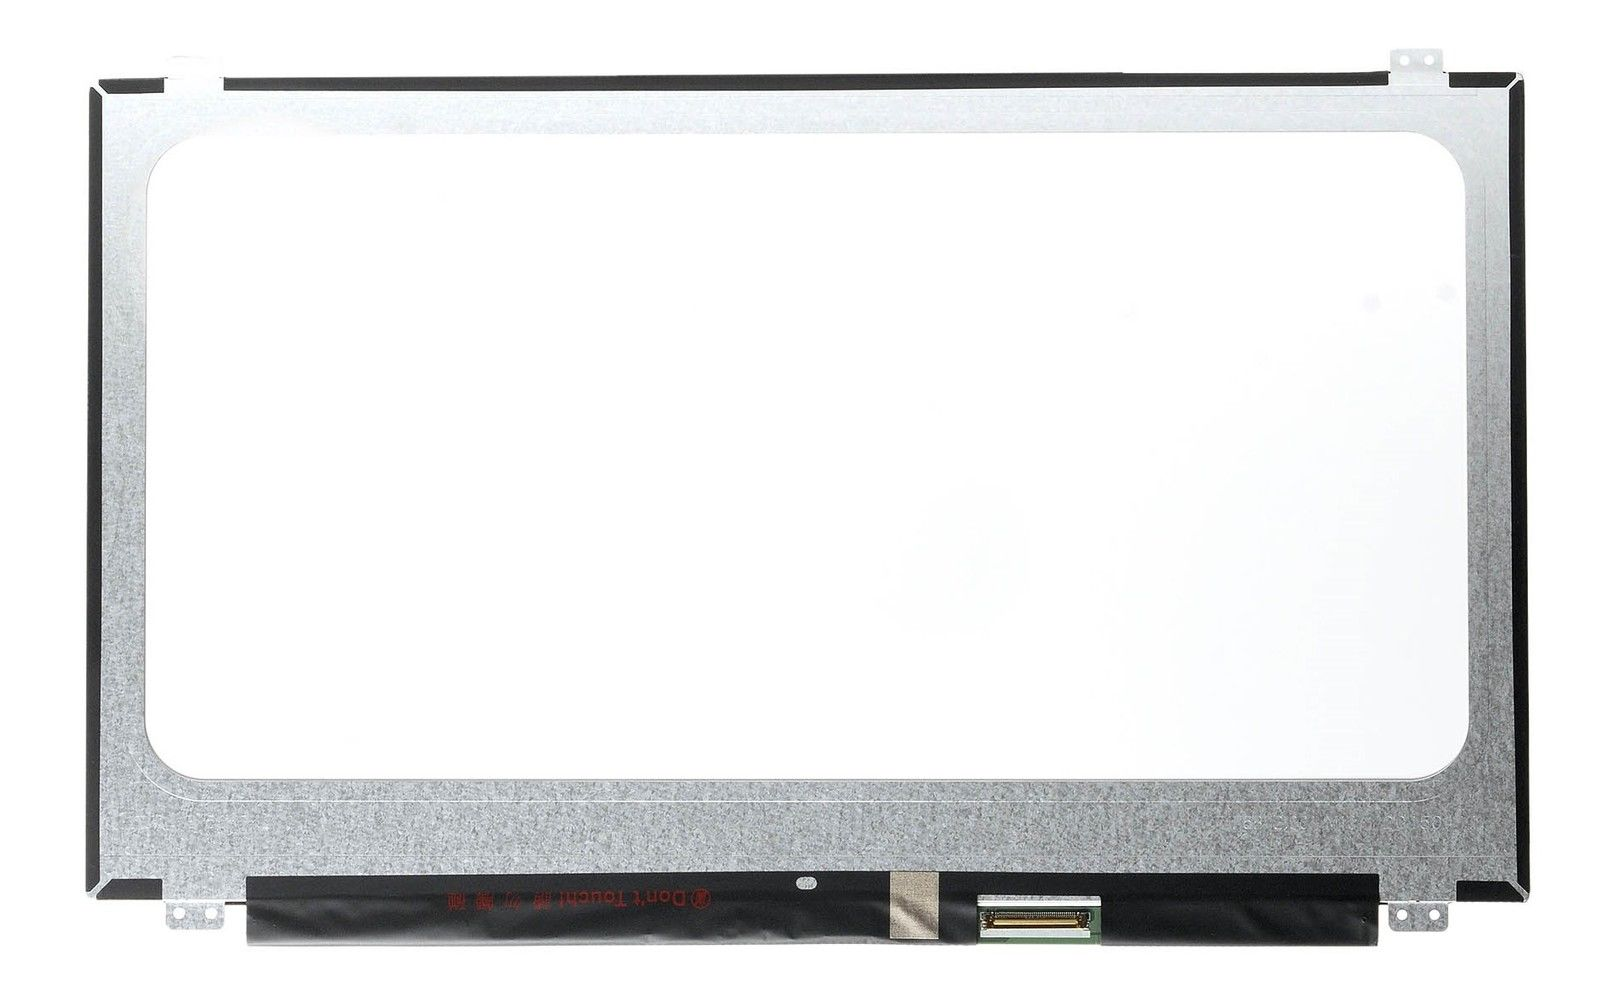 For Dell Inspiron 5551 5552 5555 5558 5559 Vostro 3558 Laptop LCD LED Touch Screen B156XTK01.0 JJ45K ноутбук dell inspiron 3558 3558 5216